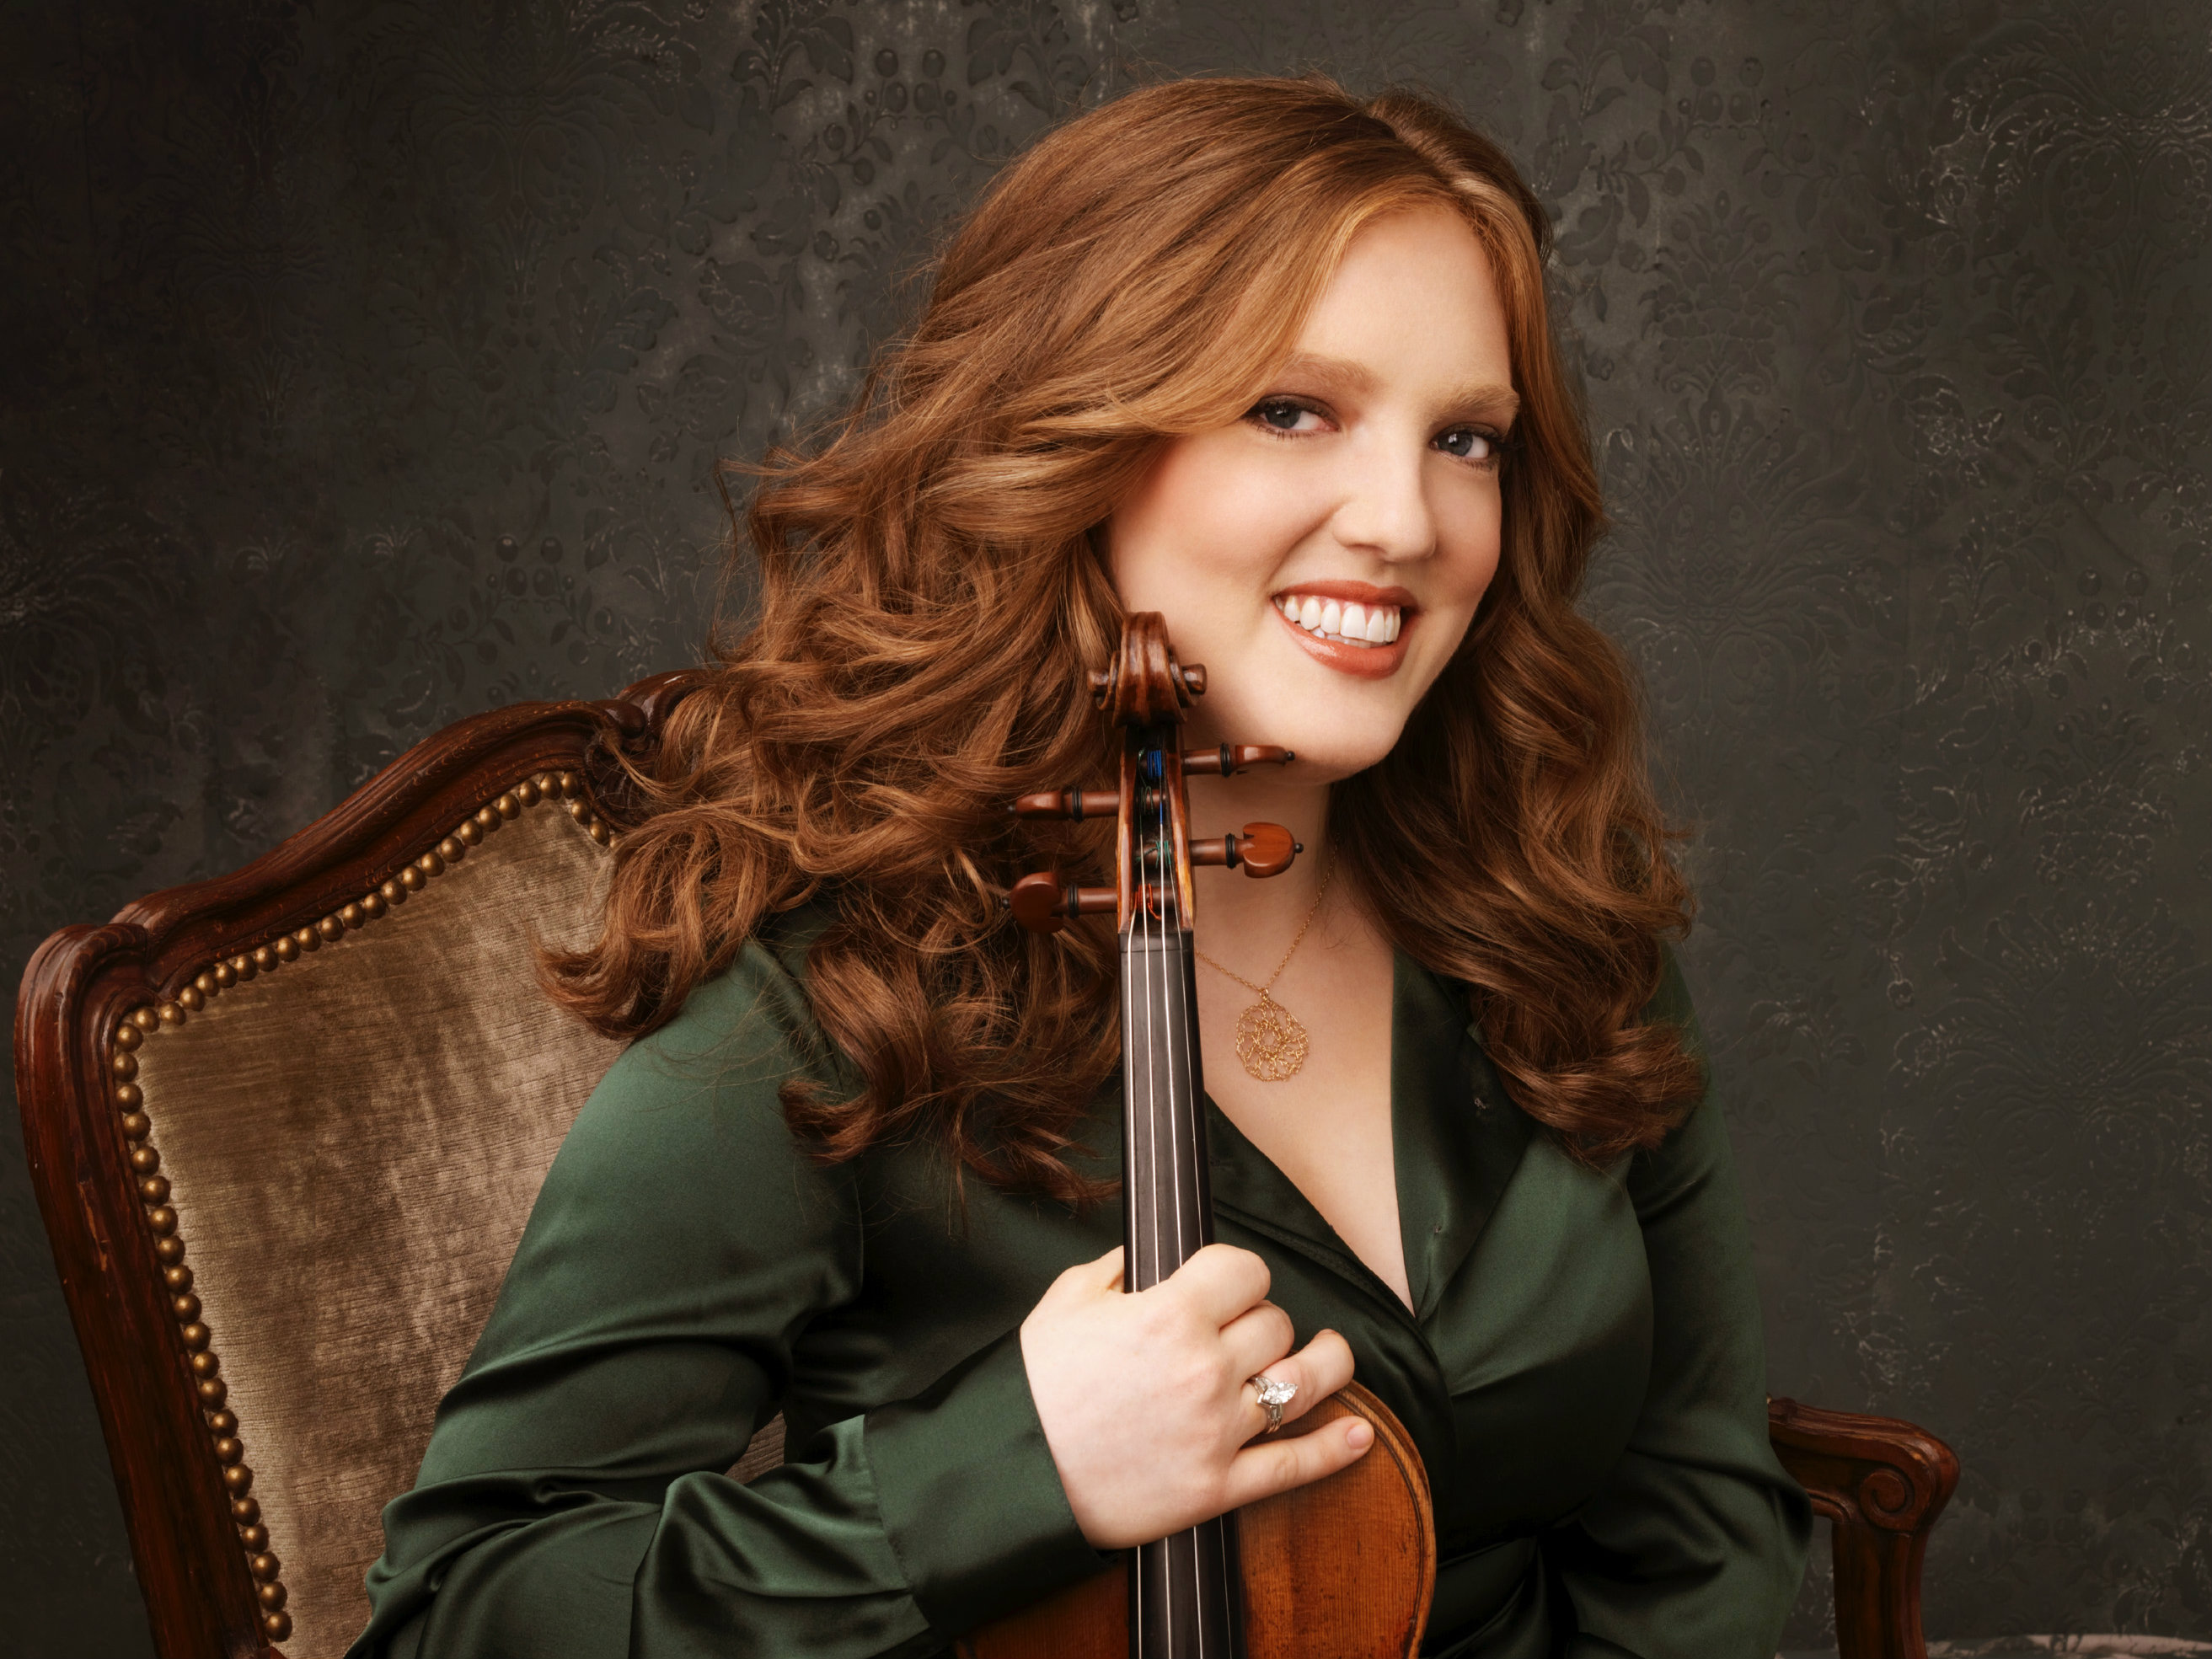 Photo: Violinist Rachel Barton Pine